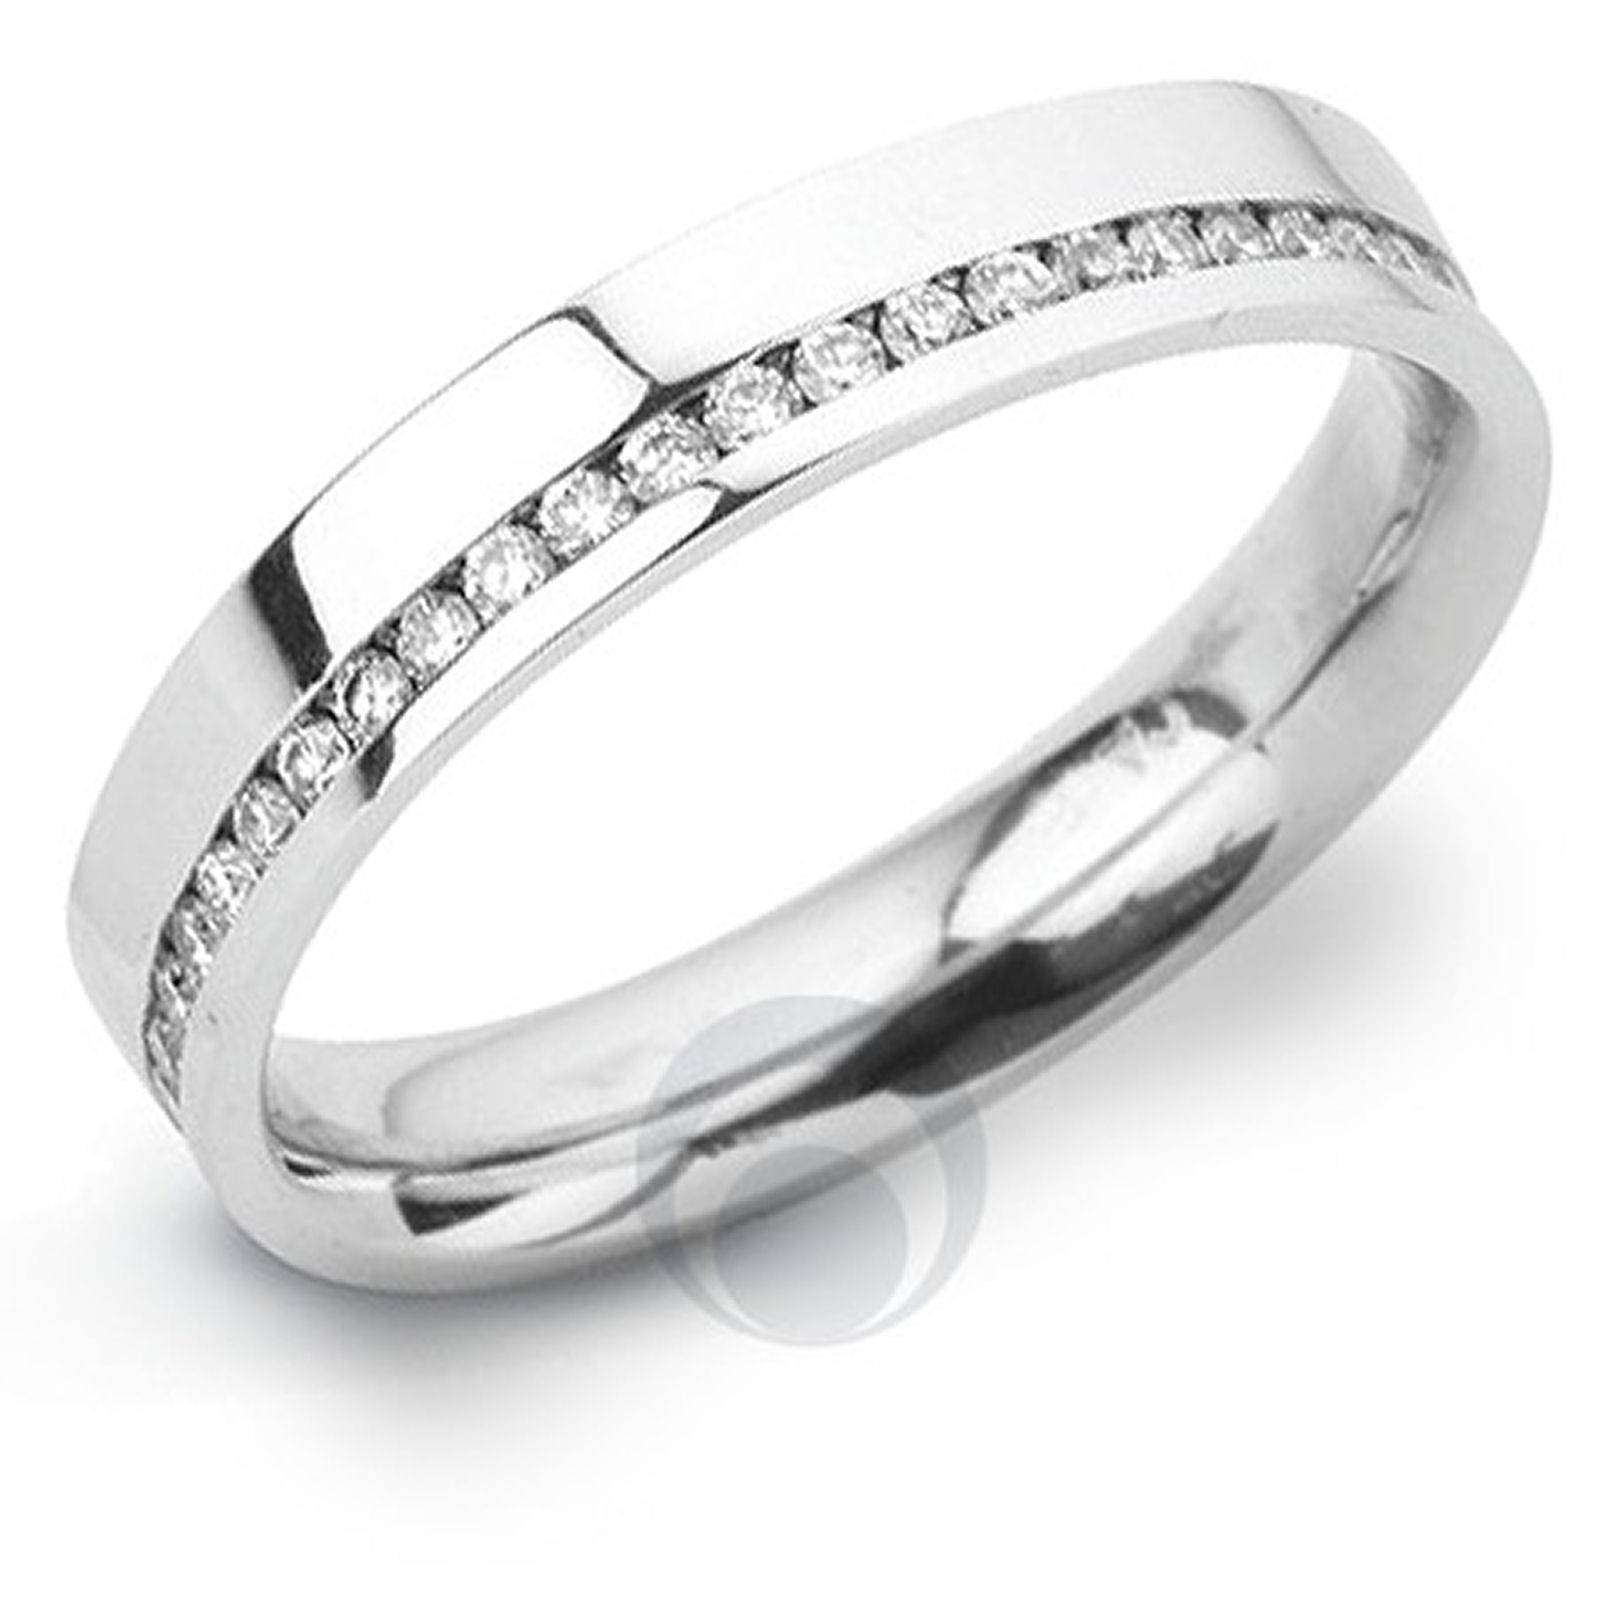 Wedding Rings : Platinum Wedding Band Sets His And Hers Cheap Mens Within Most Popular Platinum Wedding Bands For Women (View 9 of 15)